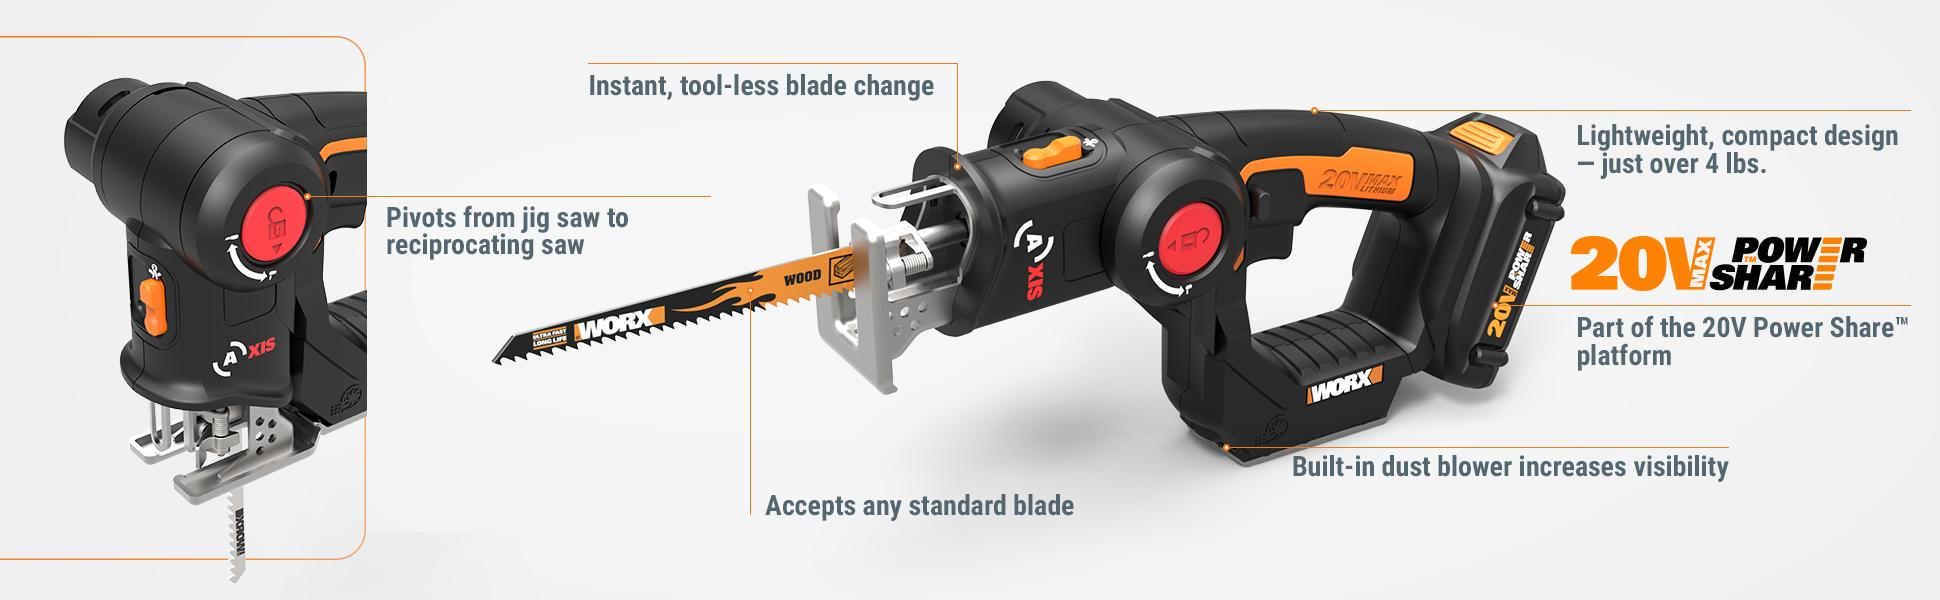 Positec Worx Wx550l 20v Axis 2 In 1 Reciprocating Saw And